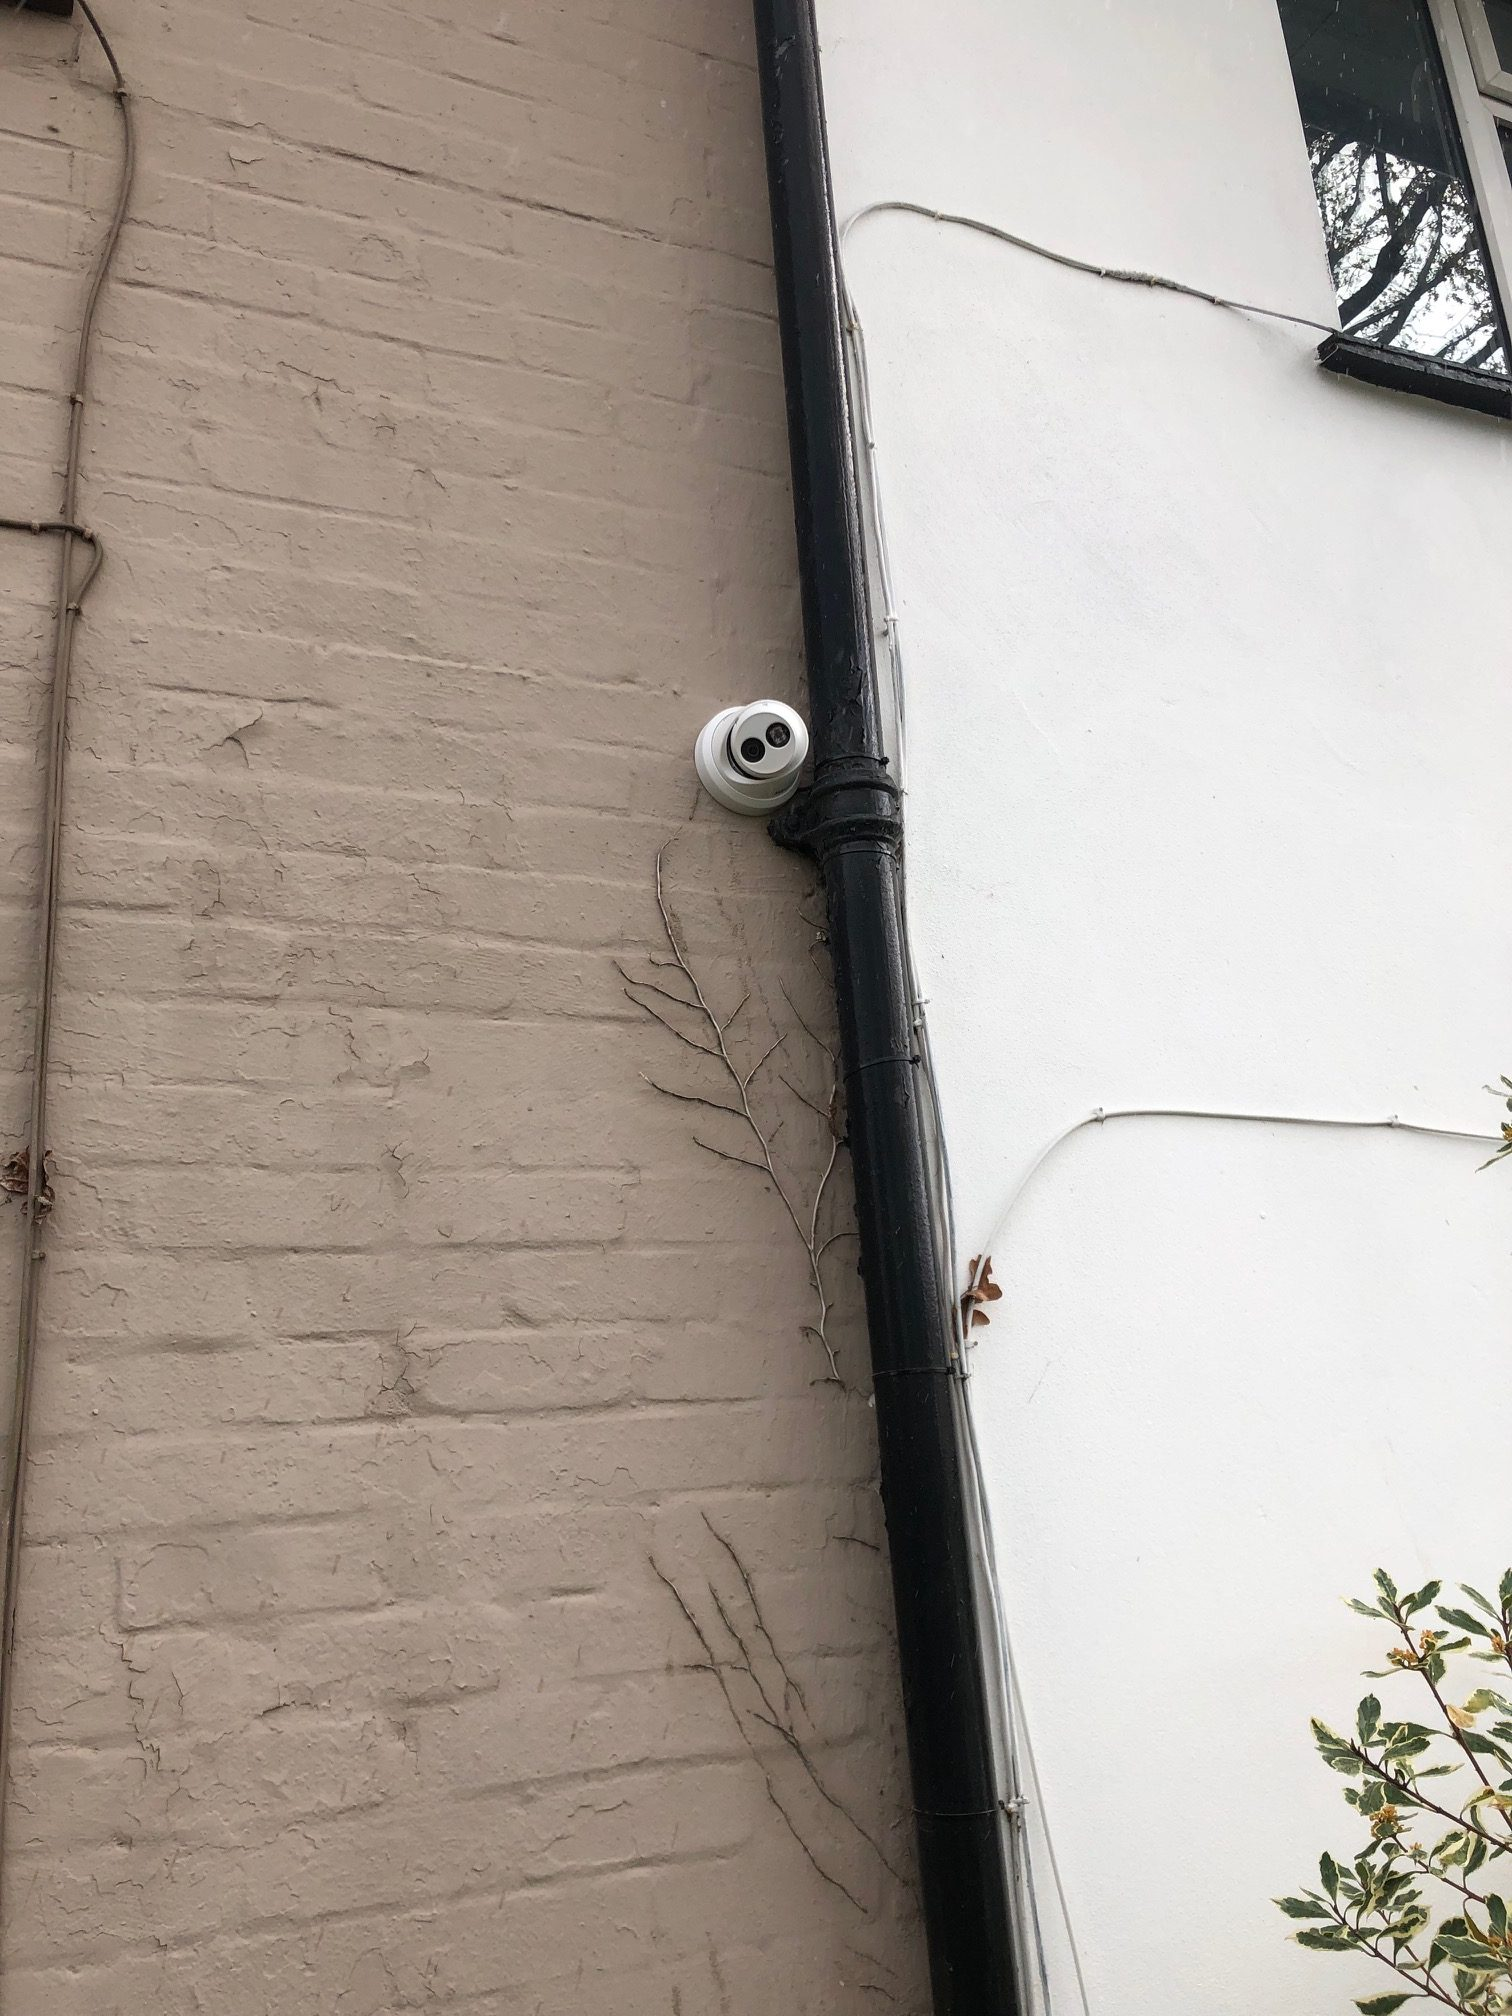 4mp CCTV Camera Chislehurst